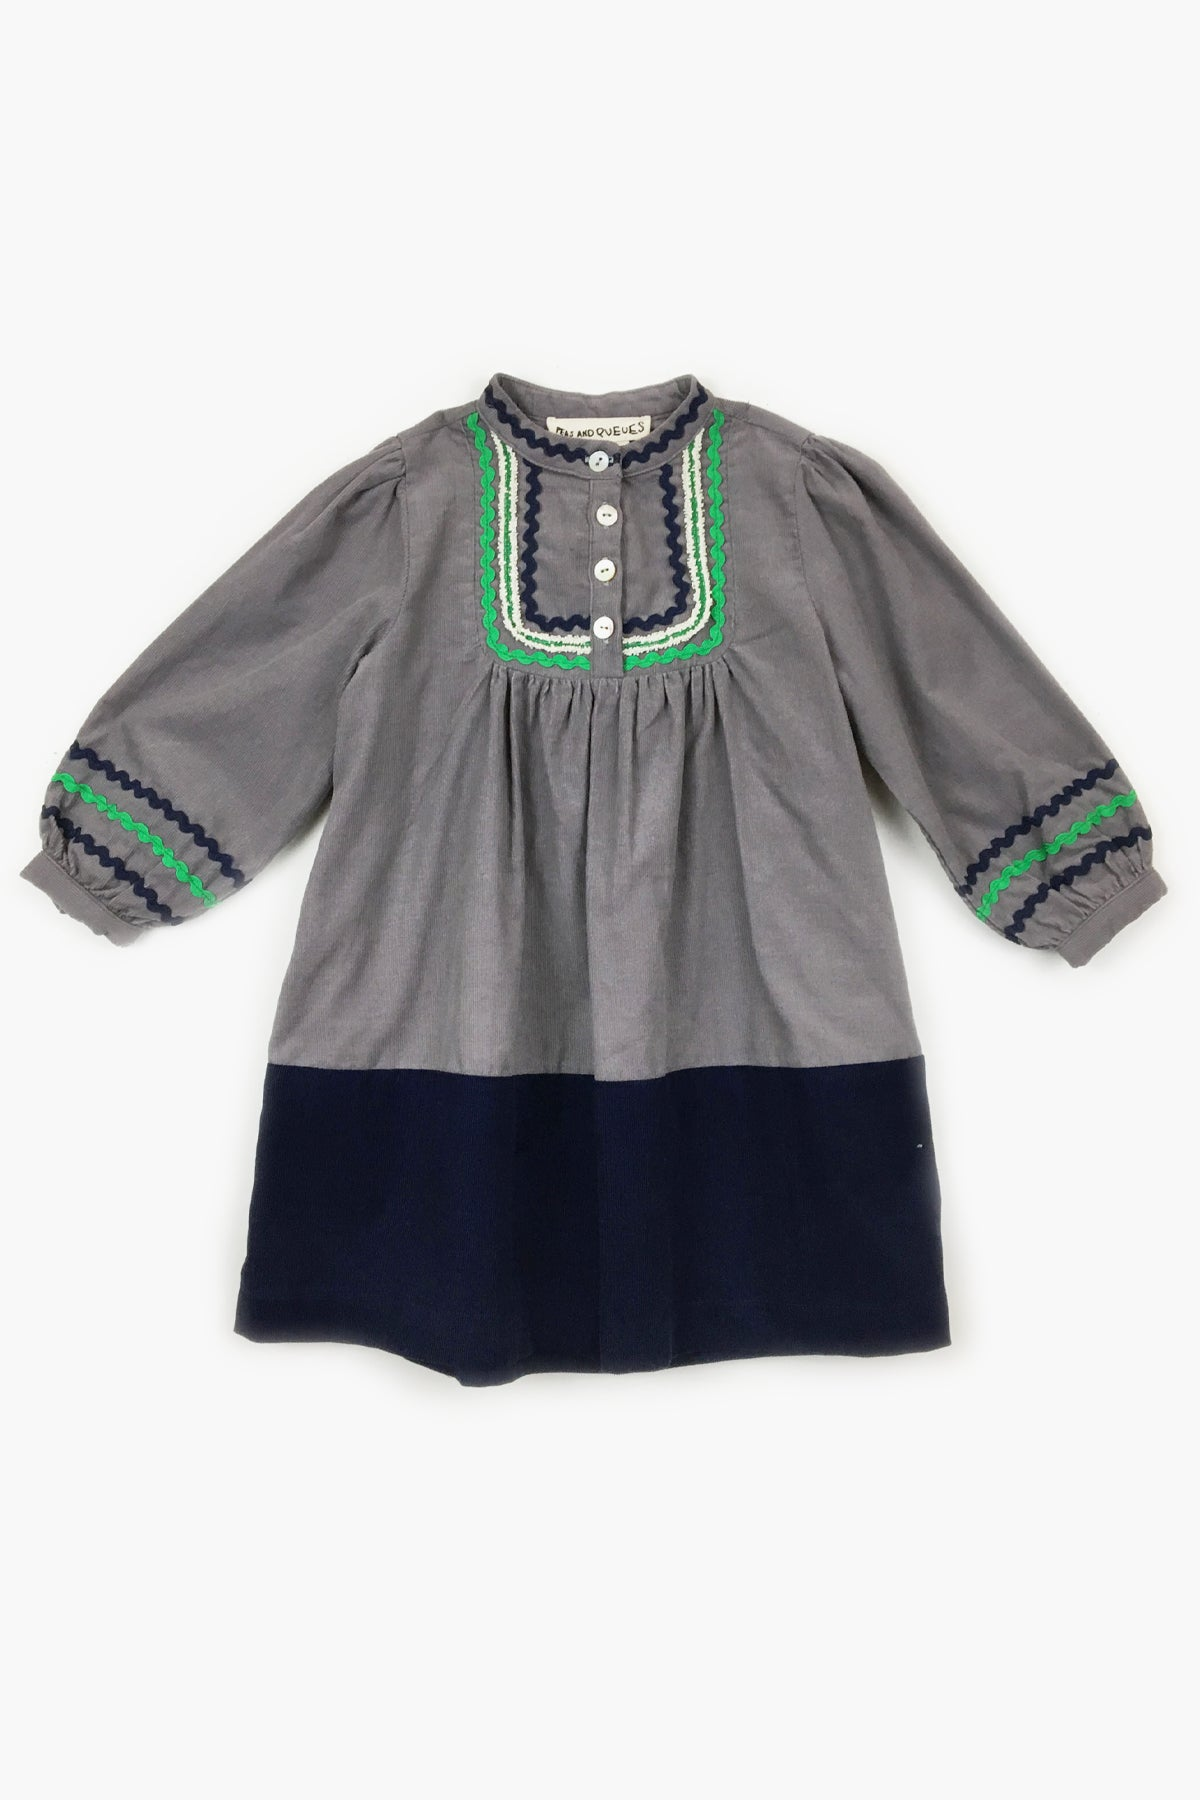 Peas and Queues Sparrow Girls Dress - Grey